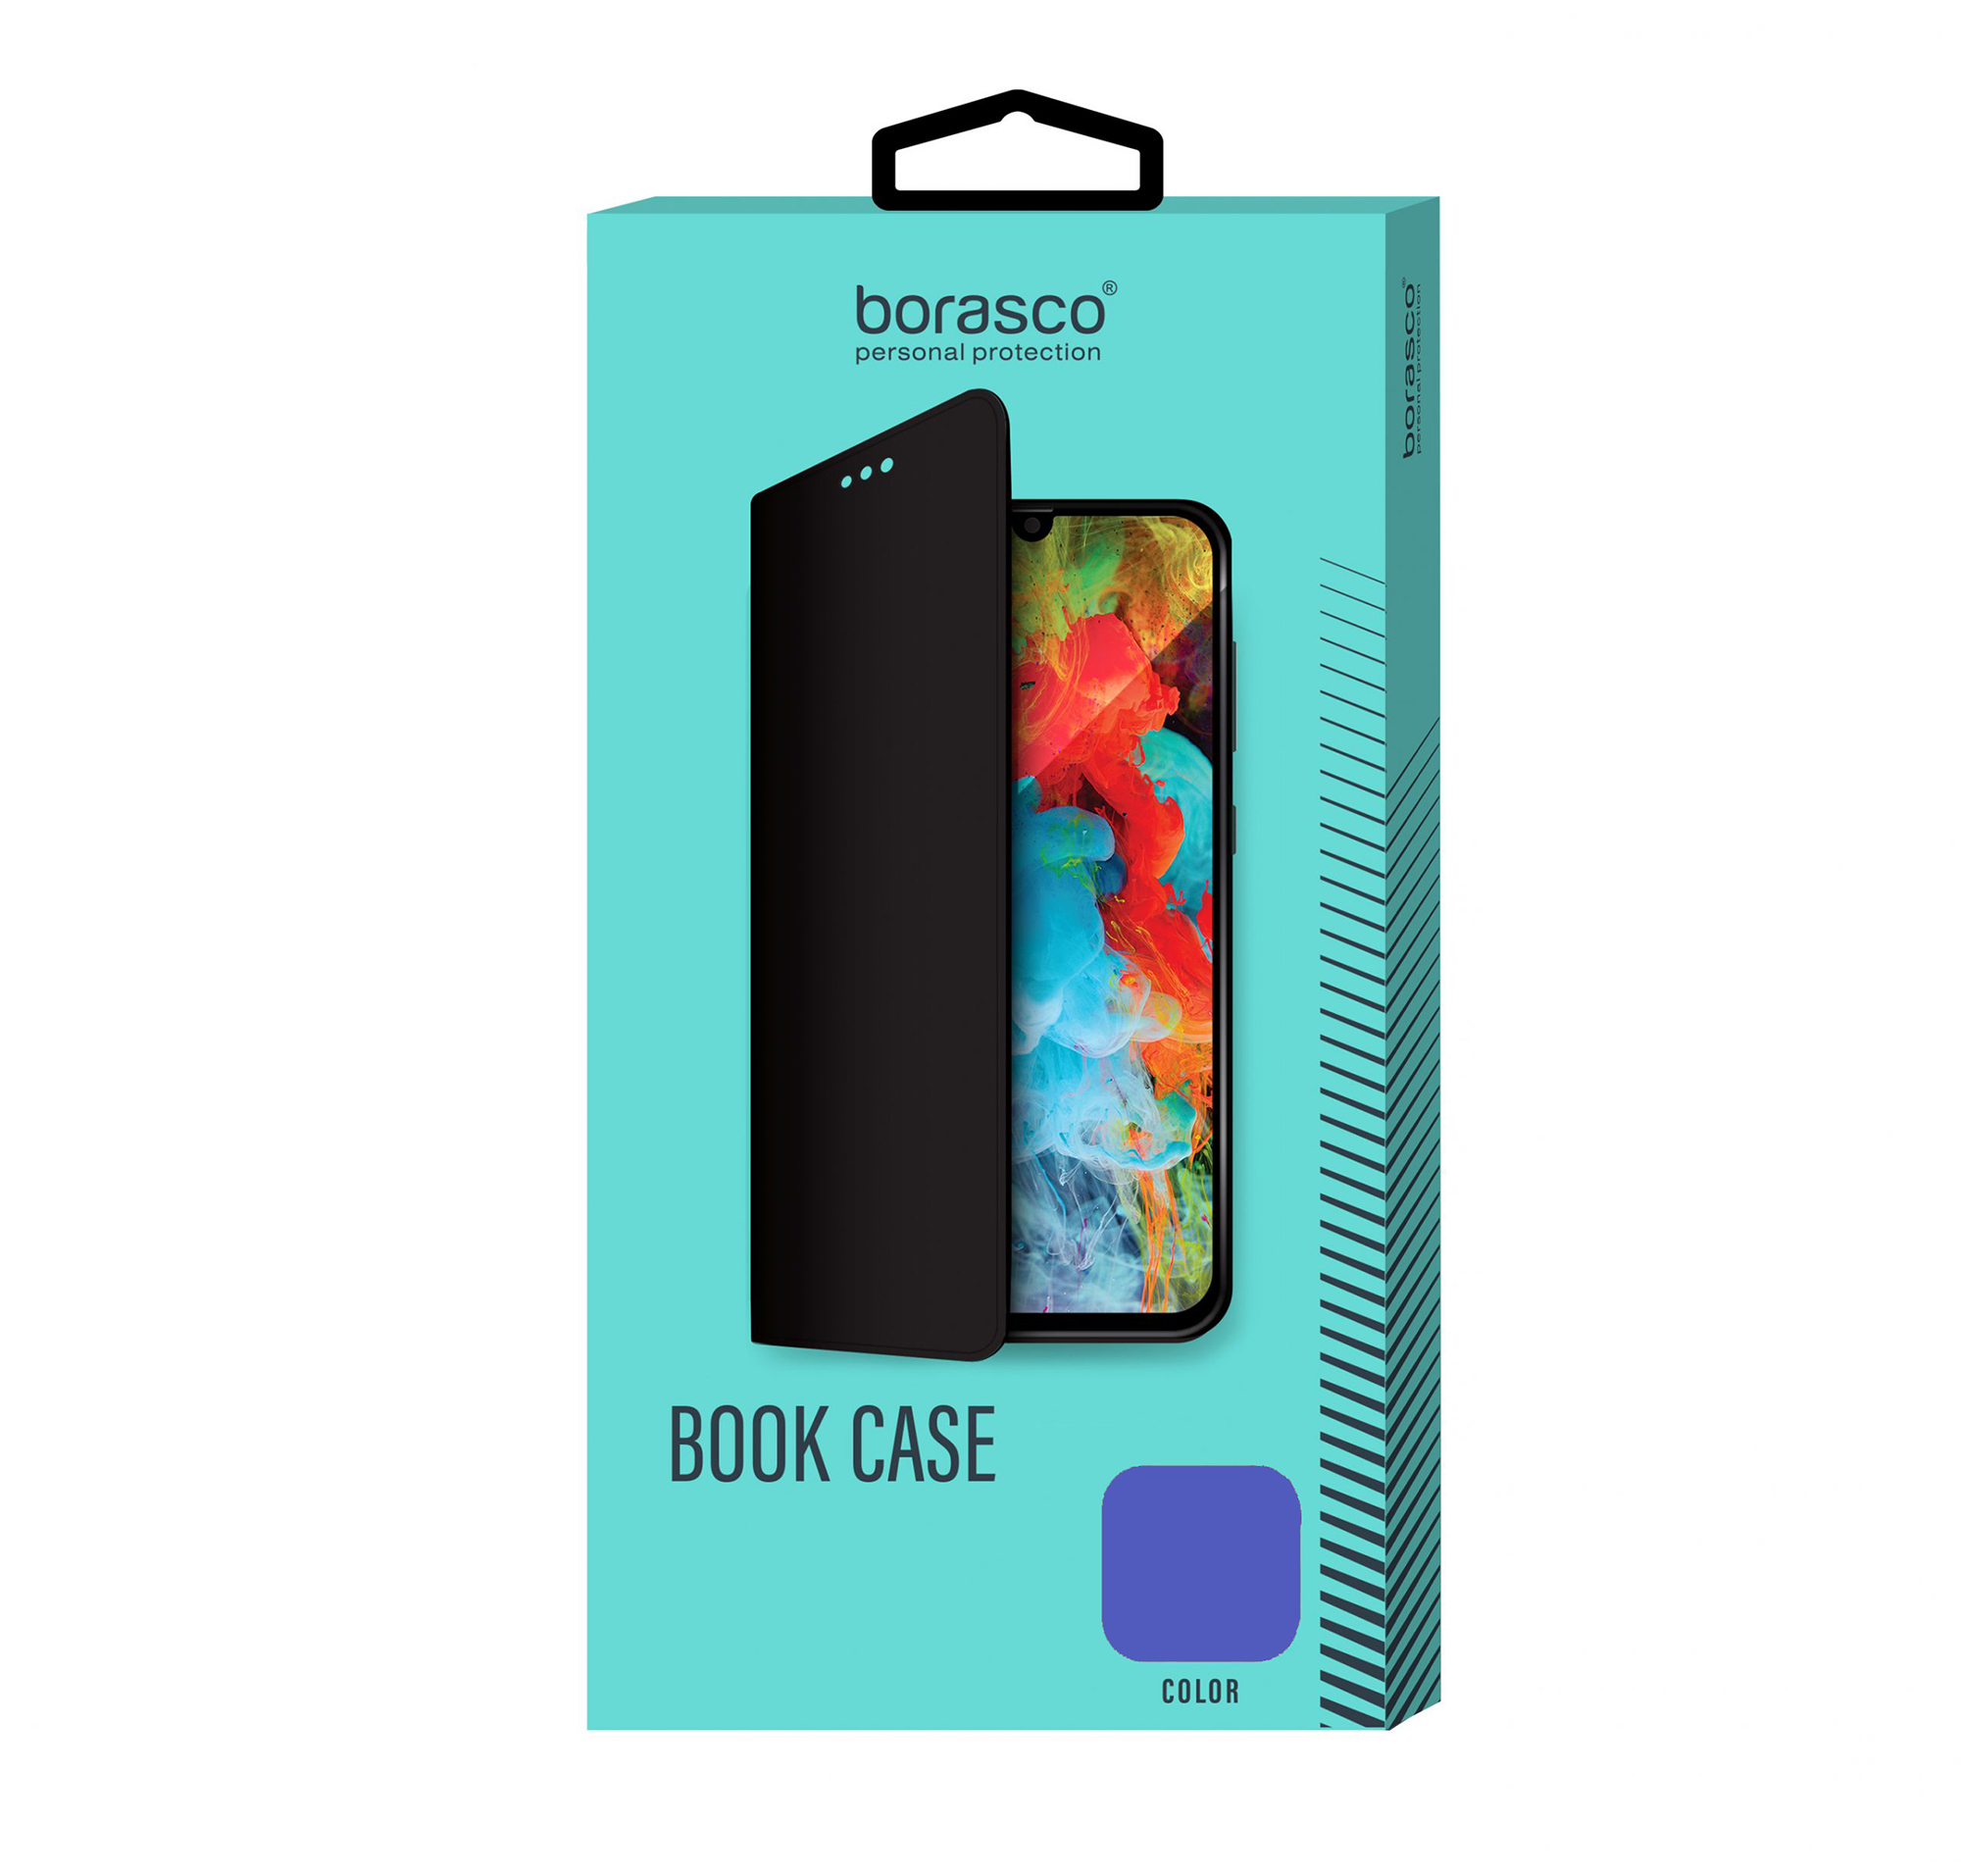 Купить Чехол BoraSCO Book Case для Huawei Y5 Prime/Lite (2018)/ Honor 7A Prime/7A/7S синий